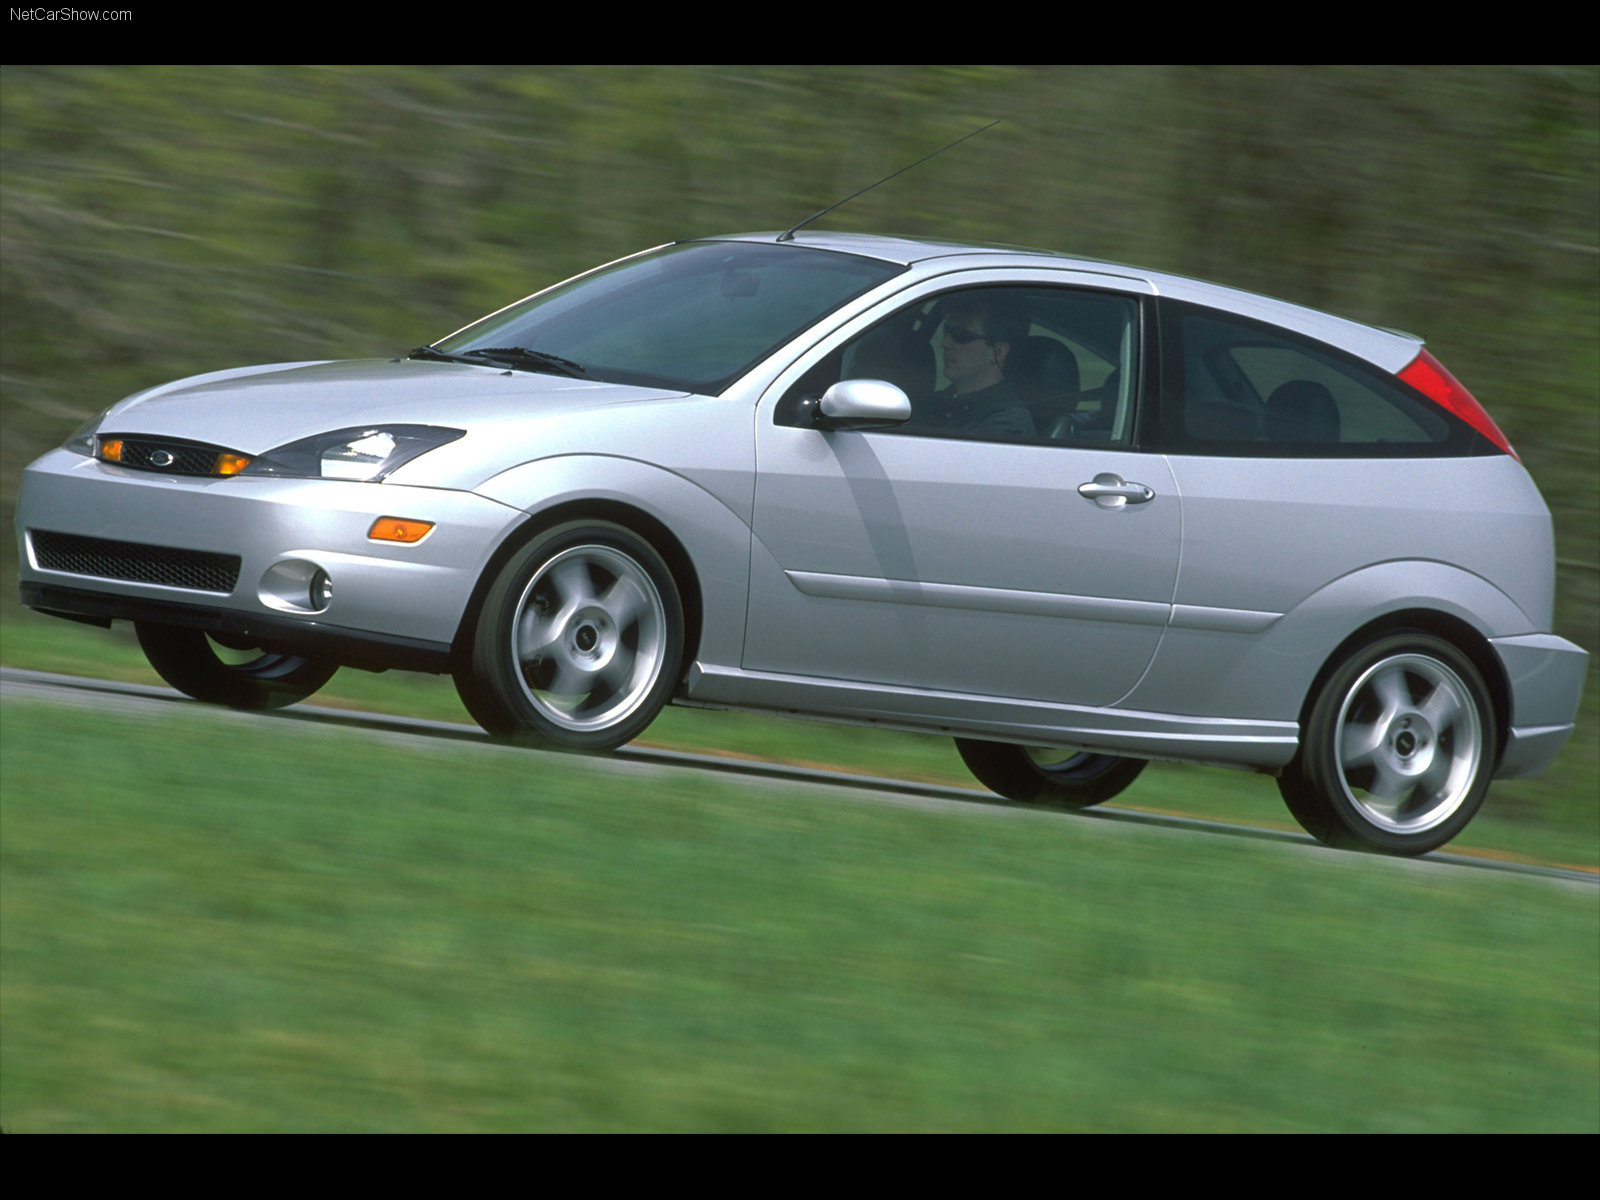 Ford Focus photo 33101